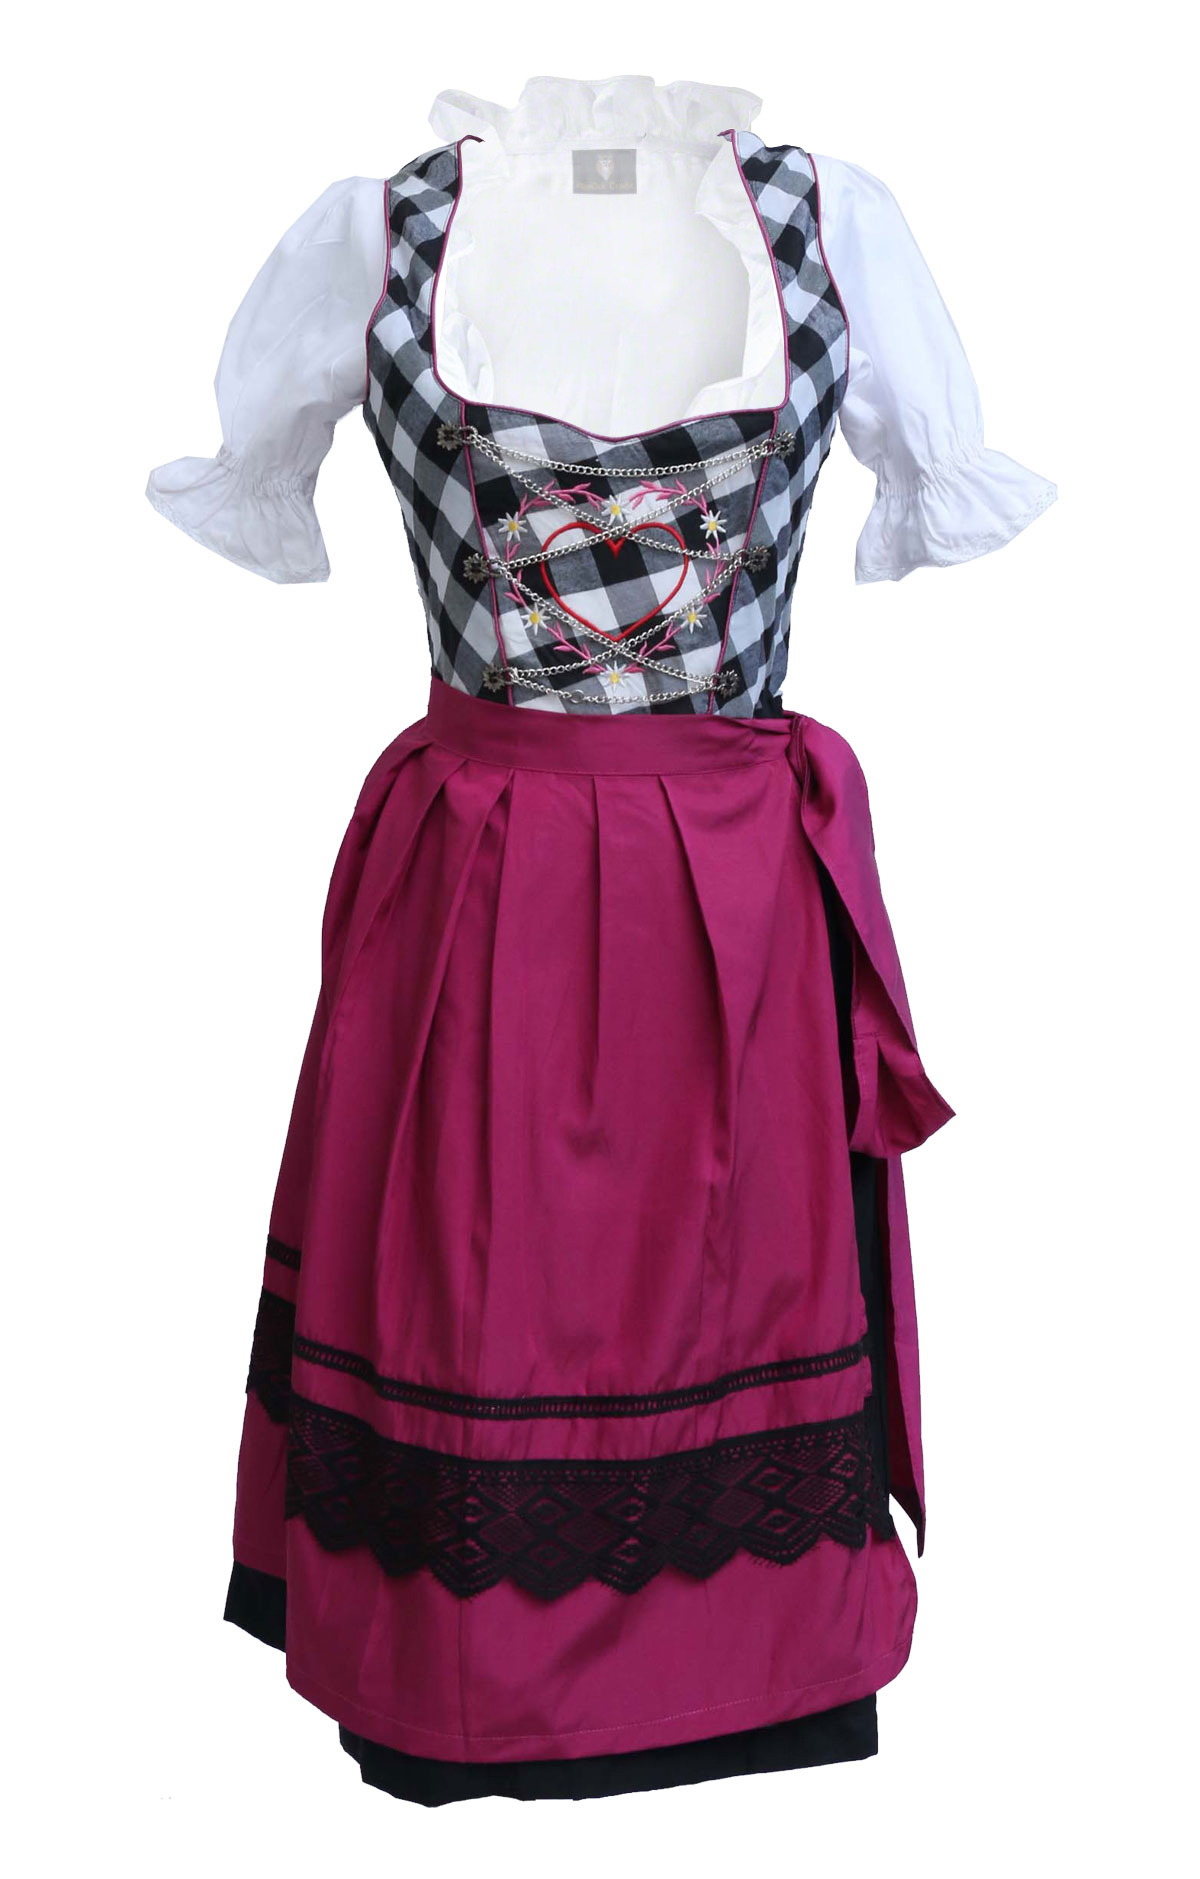 spieth wensky dirndl anna black lederhosen store. Black Bedroom Furniture Sets. Home Design Ideas